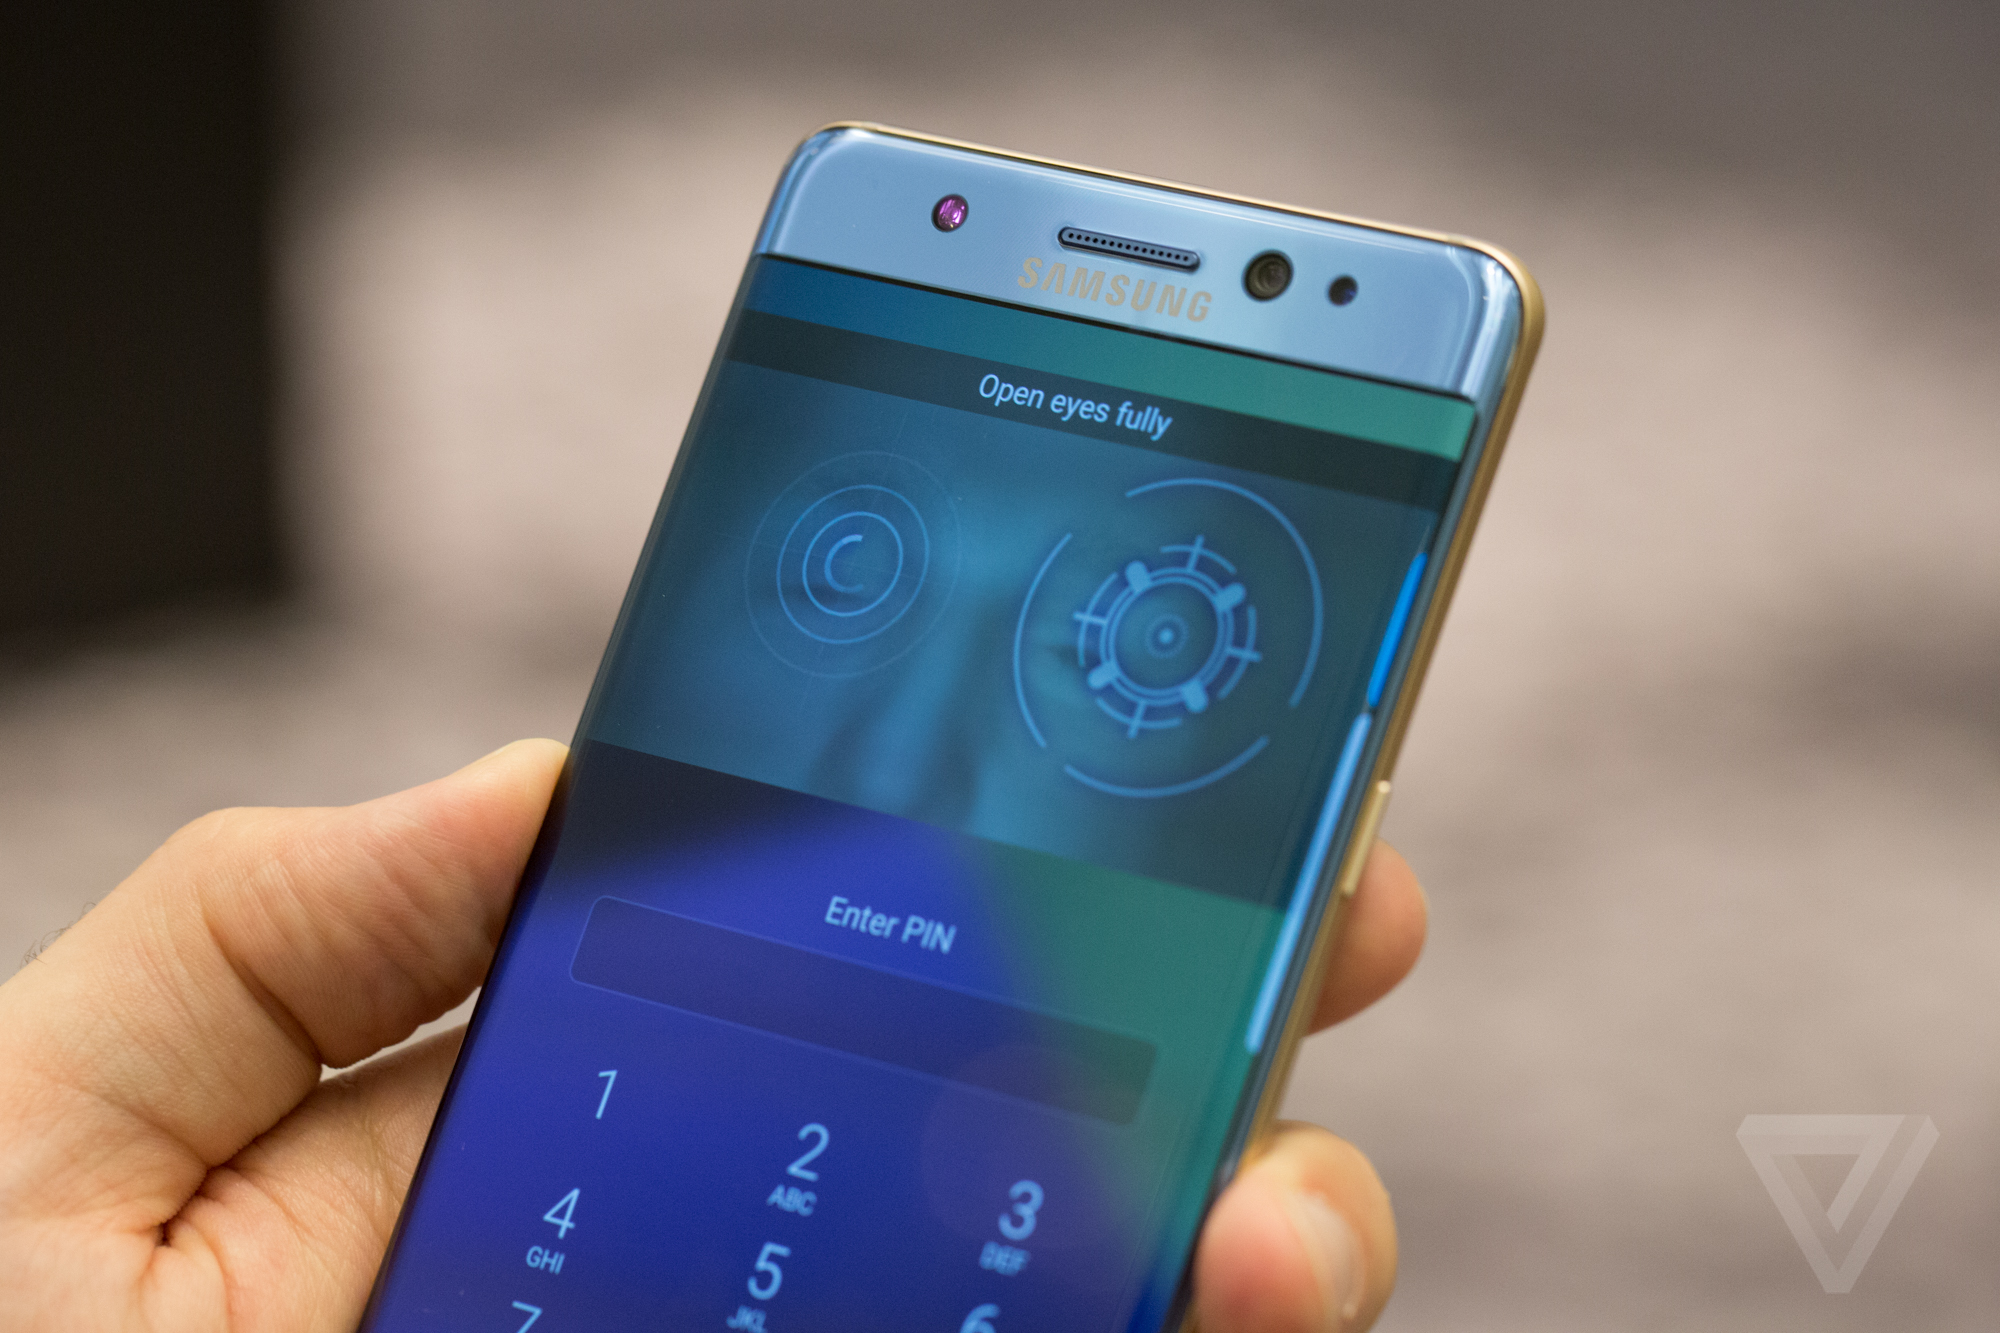 Samsung Galaxy Note Edge pictures, official photos